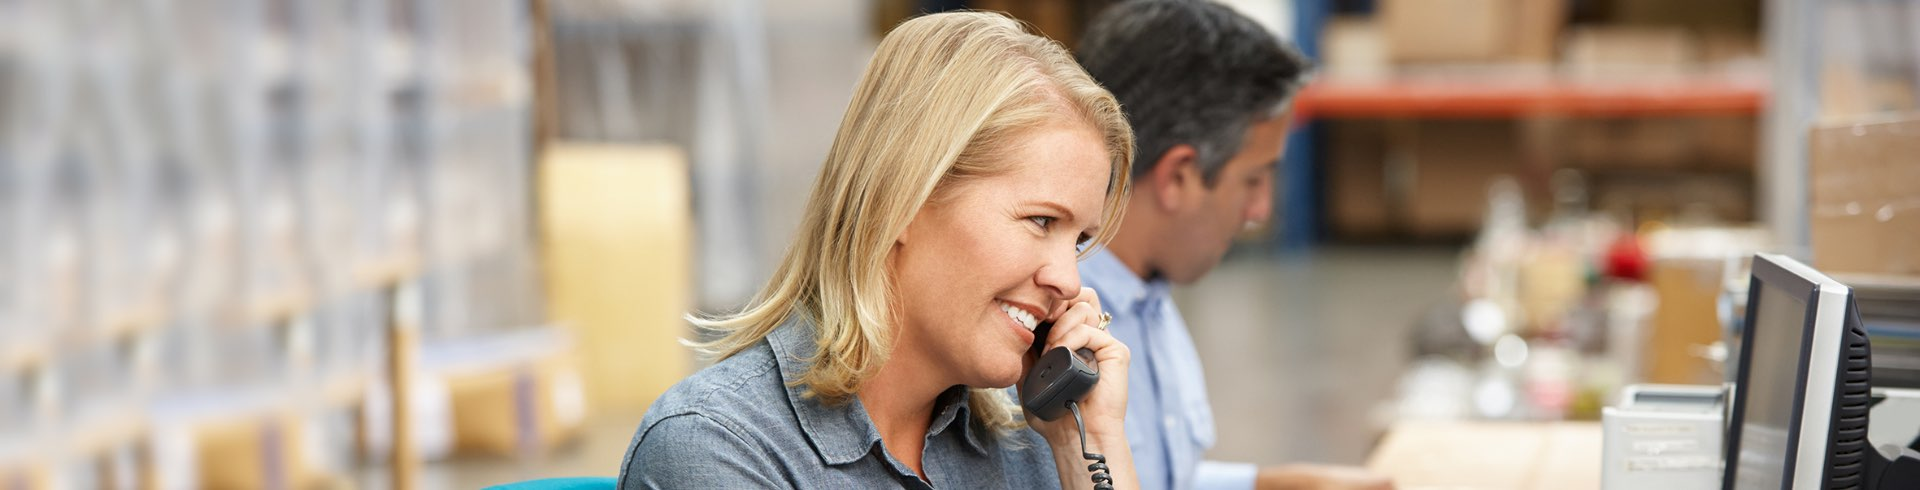 woman on phone in an office